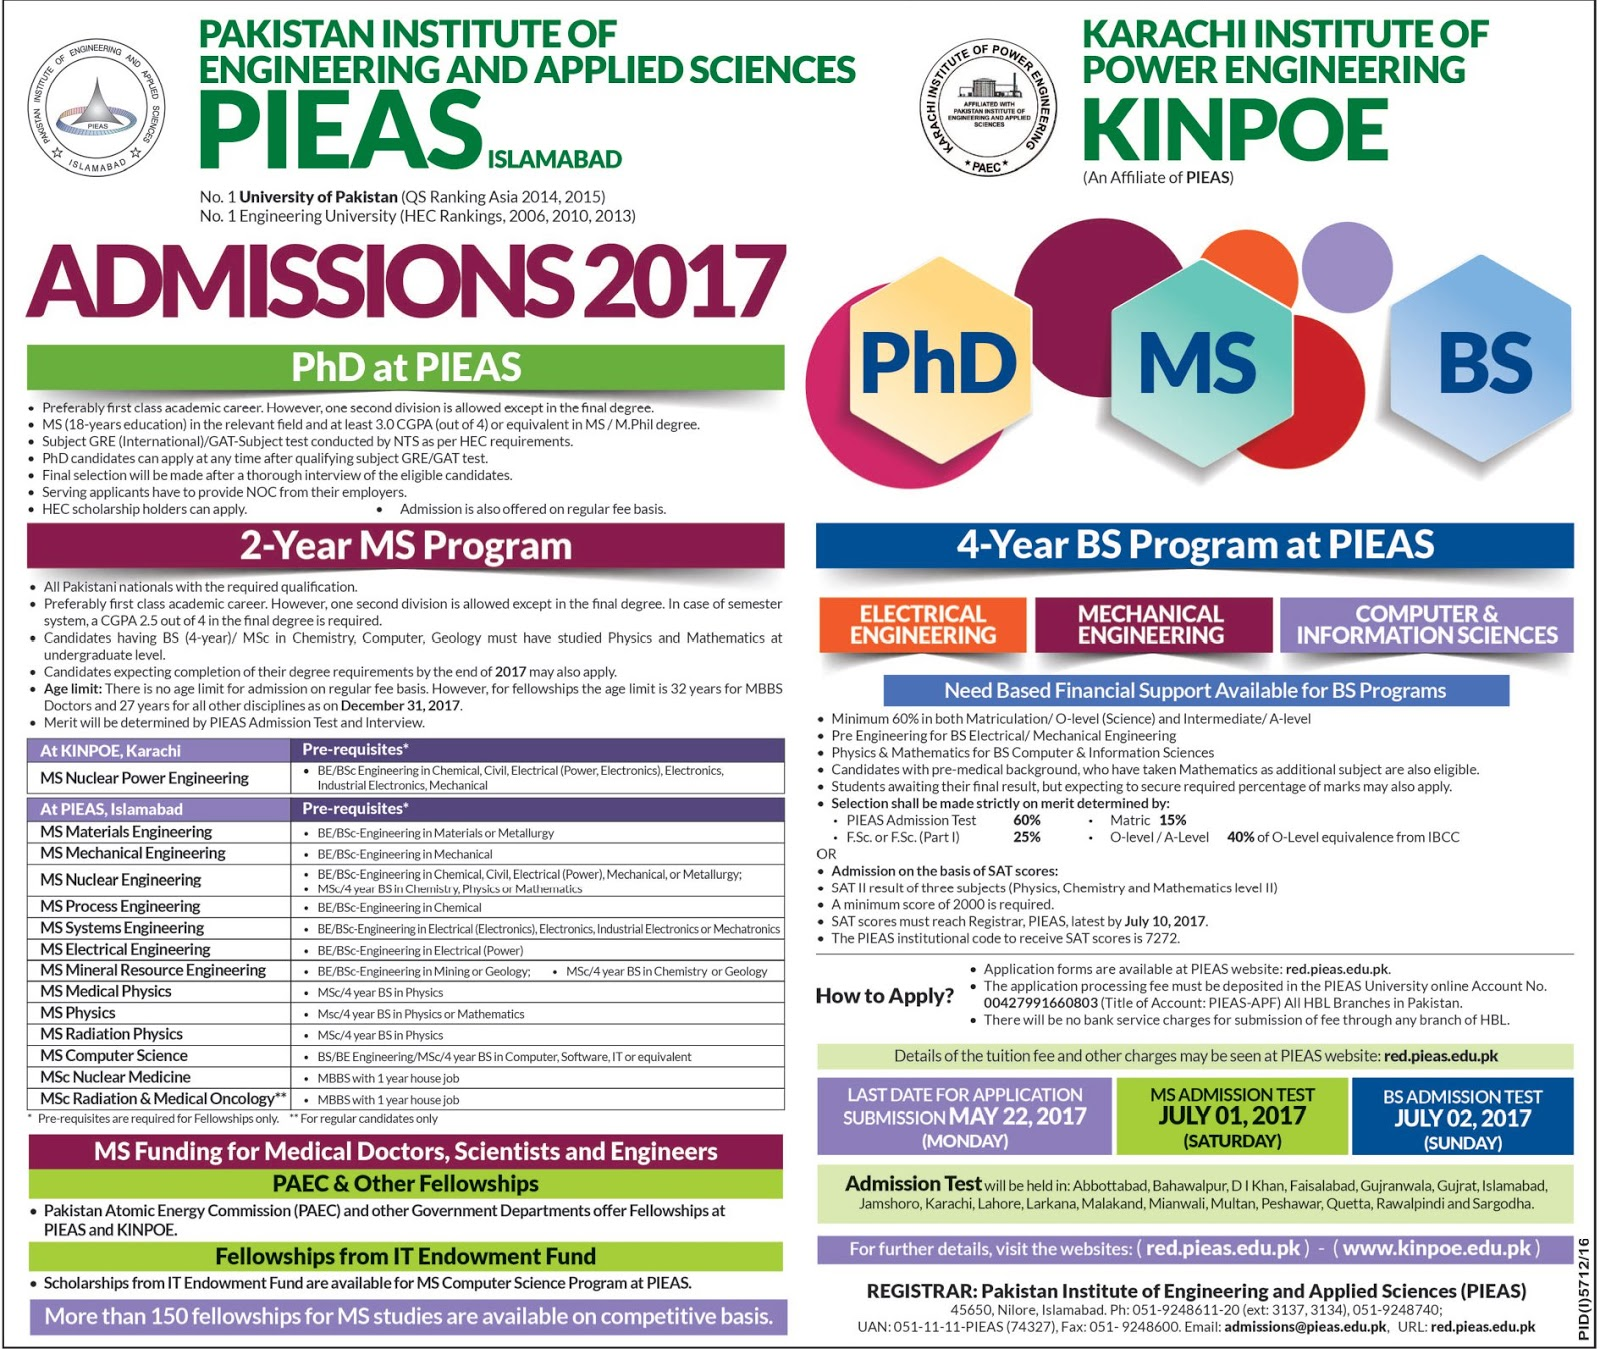 Admission open PIEAS Pakistan Institute of Engineering and Applied Sciences Islamabad 2017